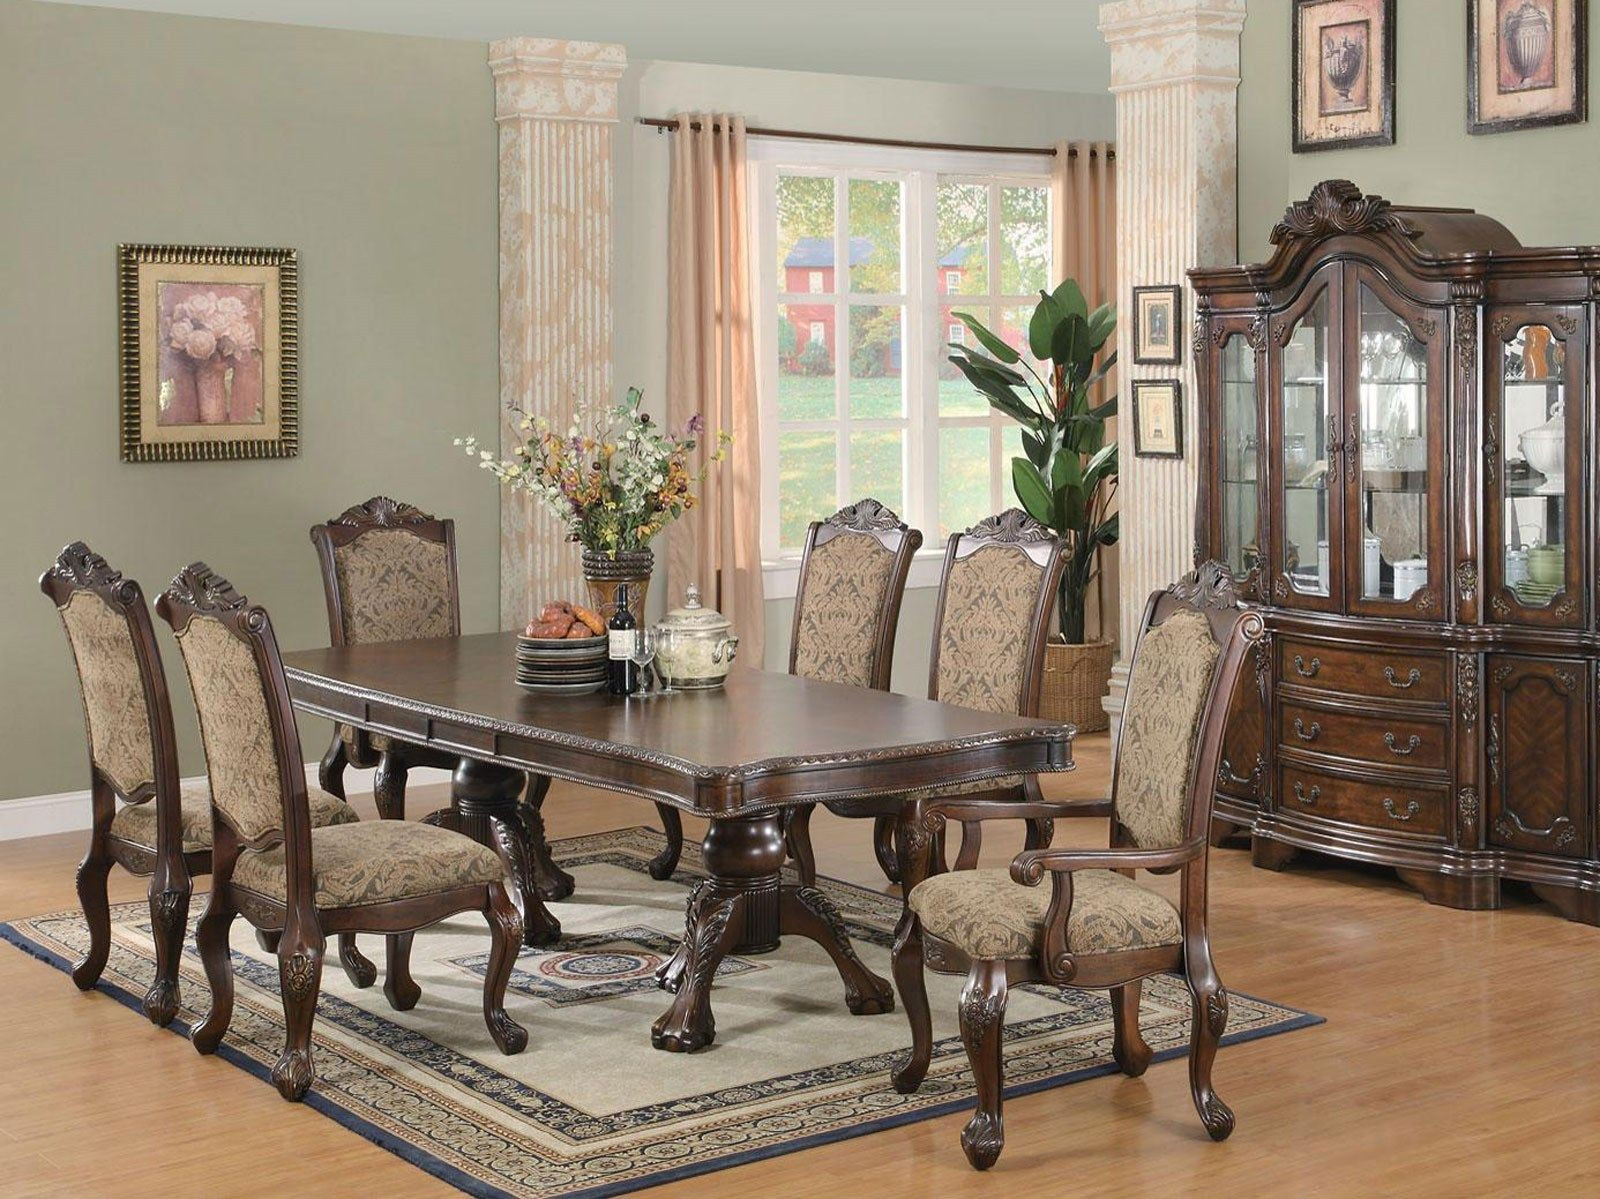 Best ideas about Formal Dining Rooms Furniture . Save or Pin Simple and Formal Dining Room Sets Amaza Design Now.